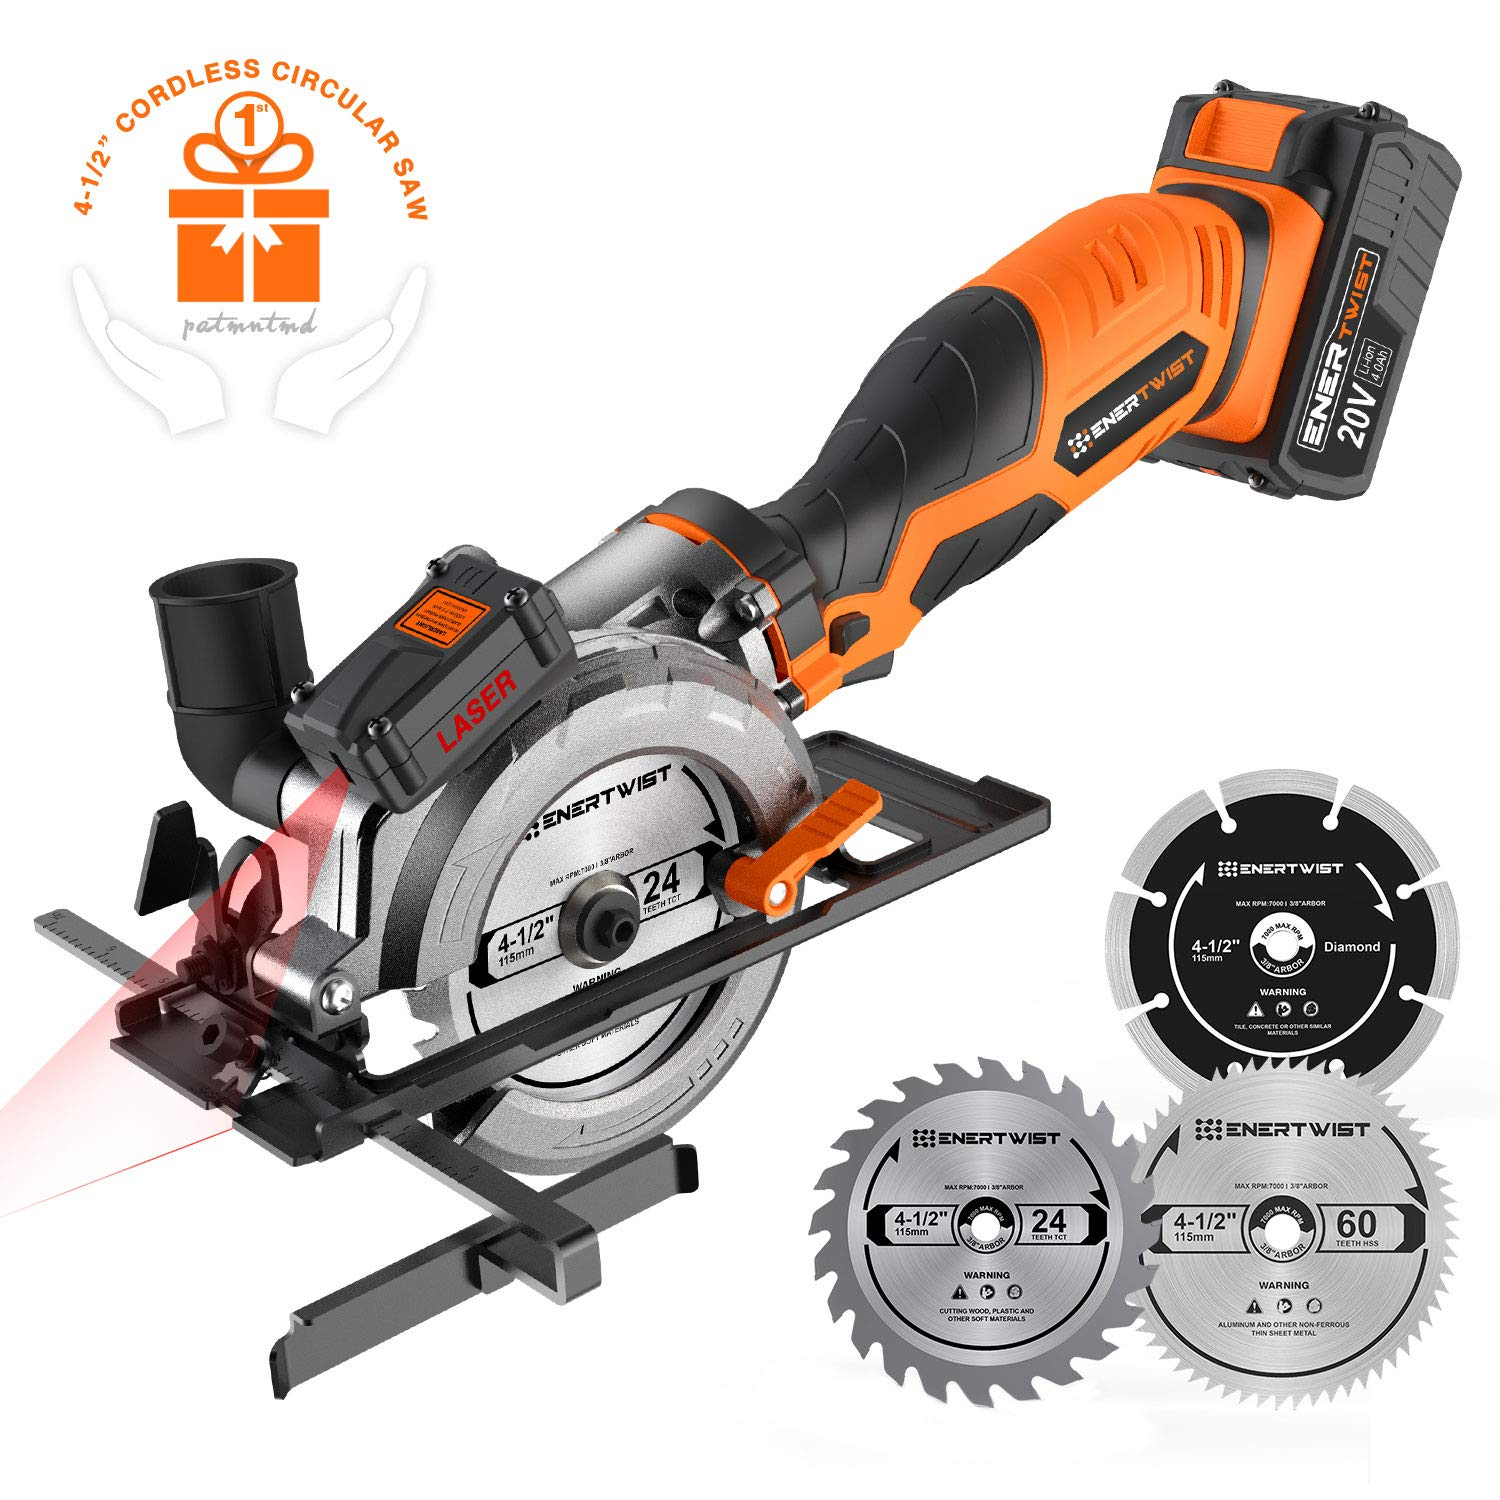 "Enertwist 20V Max 4-1/2"" Cordless Compact Circular Saw Kit with 4.0Ah Lithium-ion Battery & Charger, Vacuum Adaptor, Laser & Parallel Guide, 3 Blades for Wood Soft Metal and Tile Cutting, ET-CS-20C"